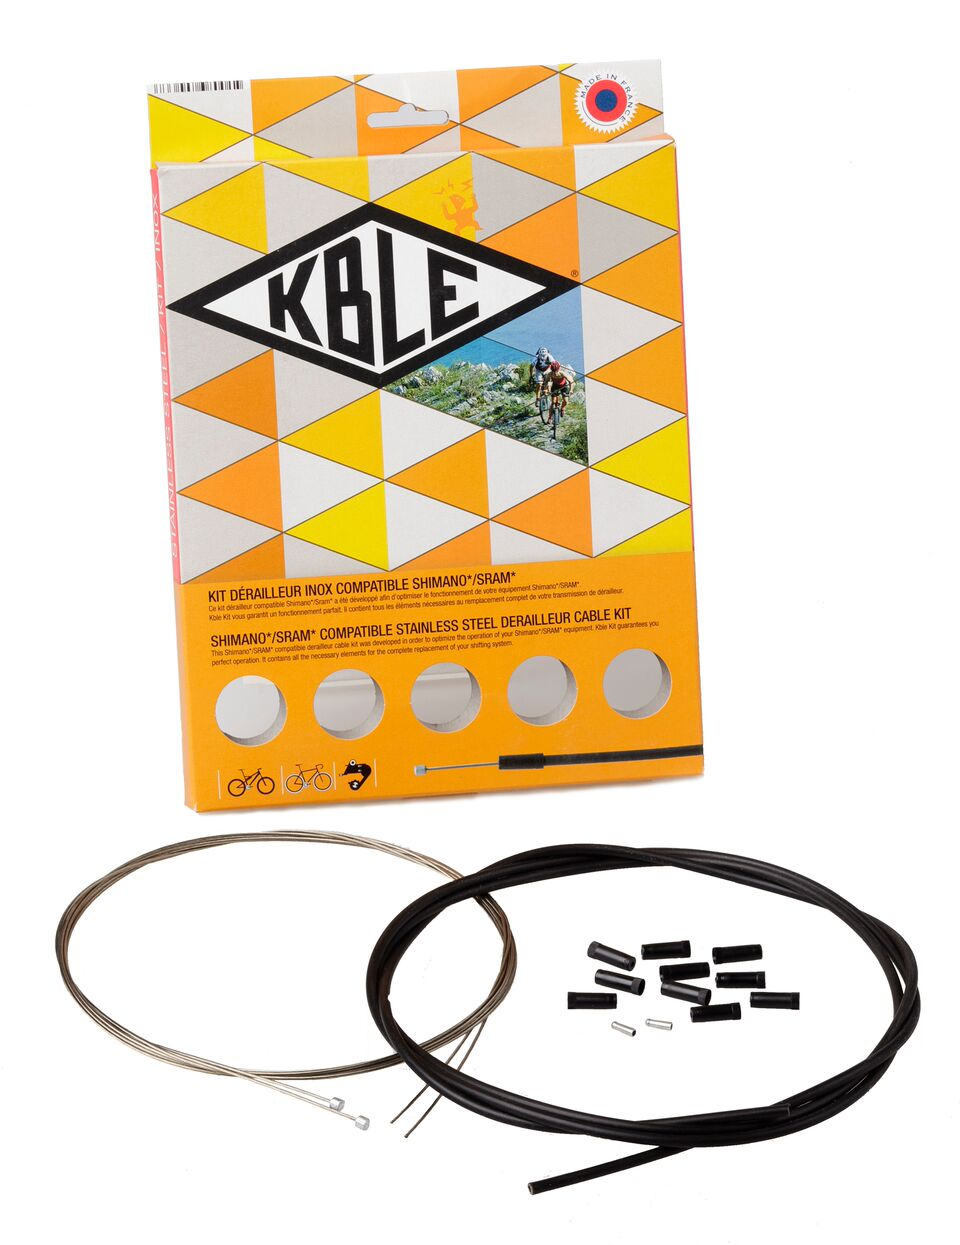 Transfil K.ble Shimano Gear Cable Set | Gear cables